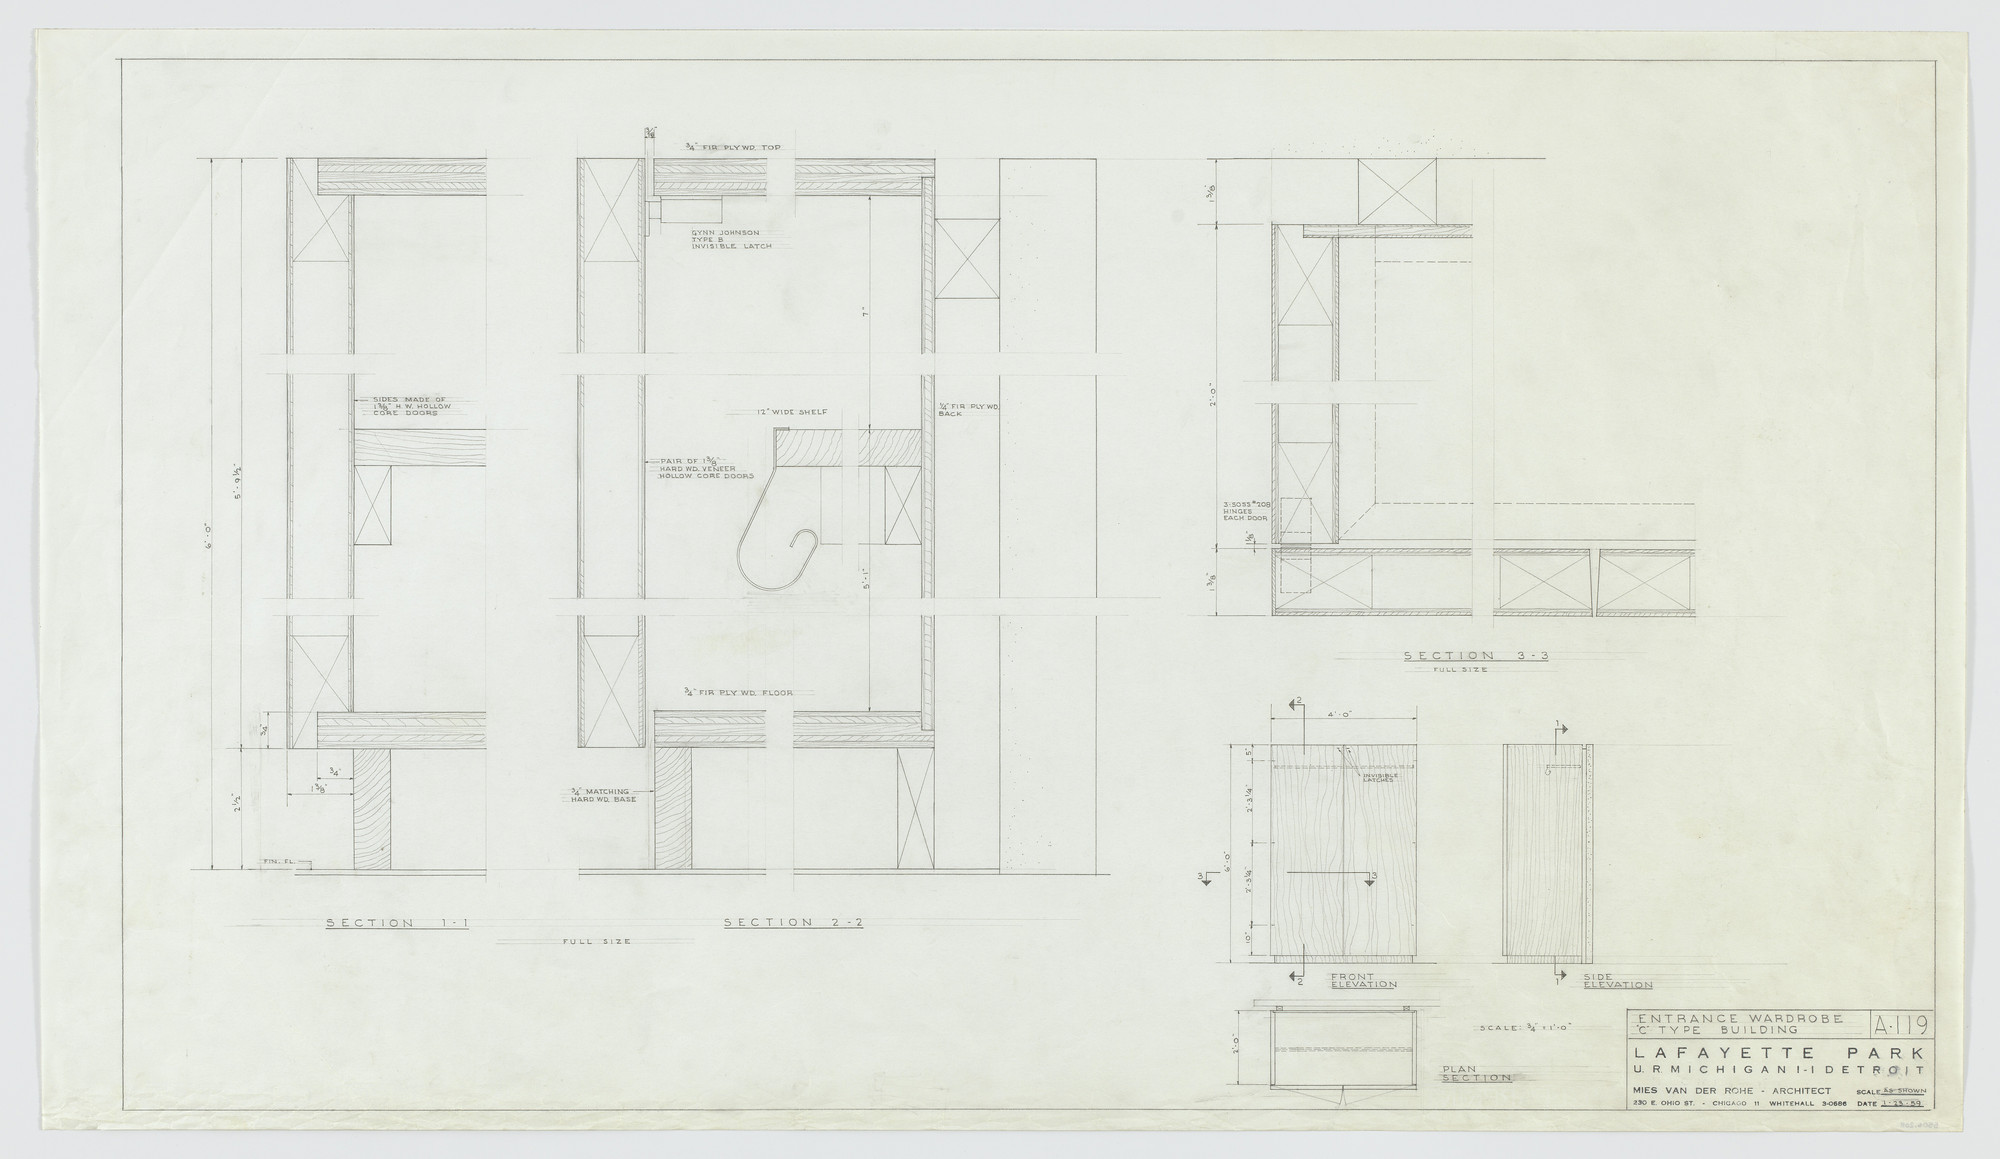 Ludwig Mies van der Rohe. Pavilion Apartments and Town Houses, Lafayette Park, Detroit, MI (Entrance wardrobe C type building. Plan, elevations, sections.). 1958